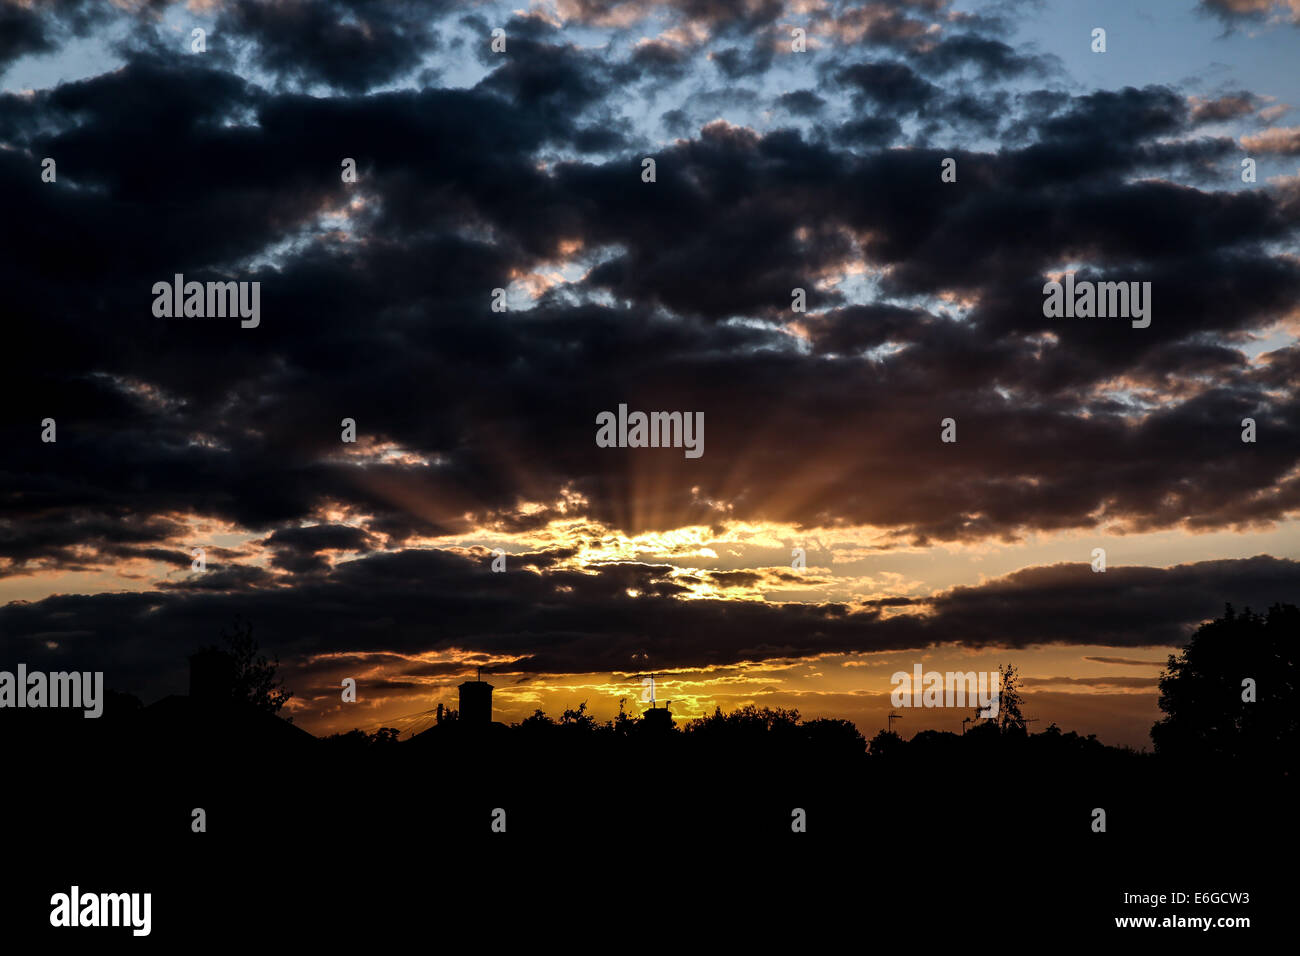 Oxford, UK. 22nd August, 2014. UK weather: Sun sets over Oxford. Credit:  petericardo lusabia/Alamy Live News - Stock Image